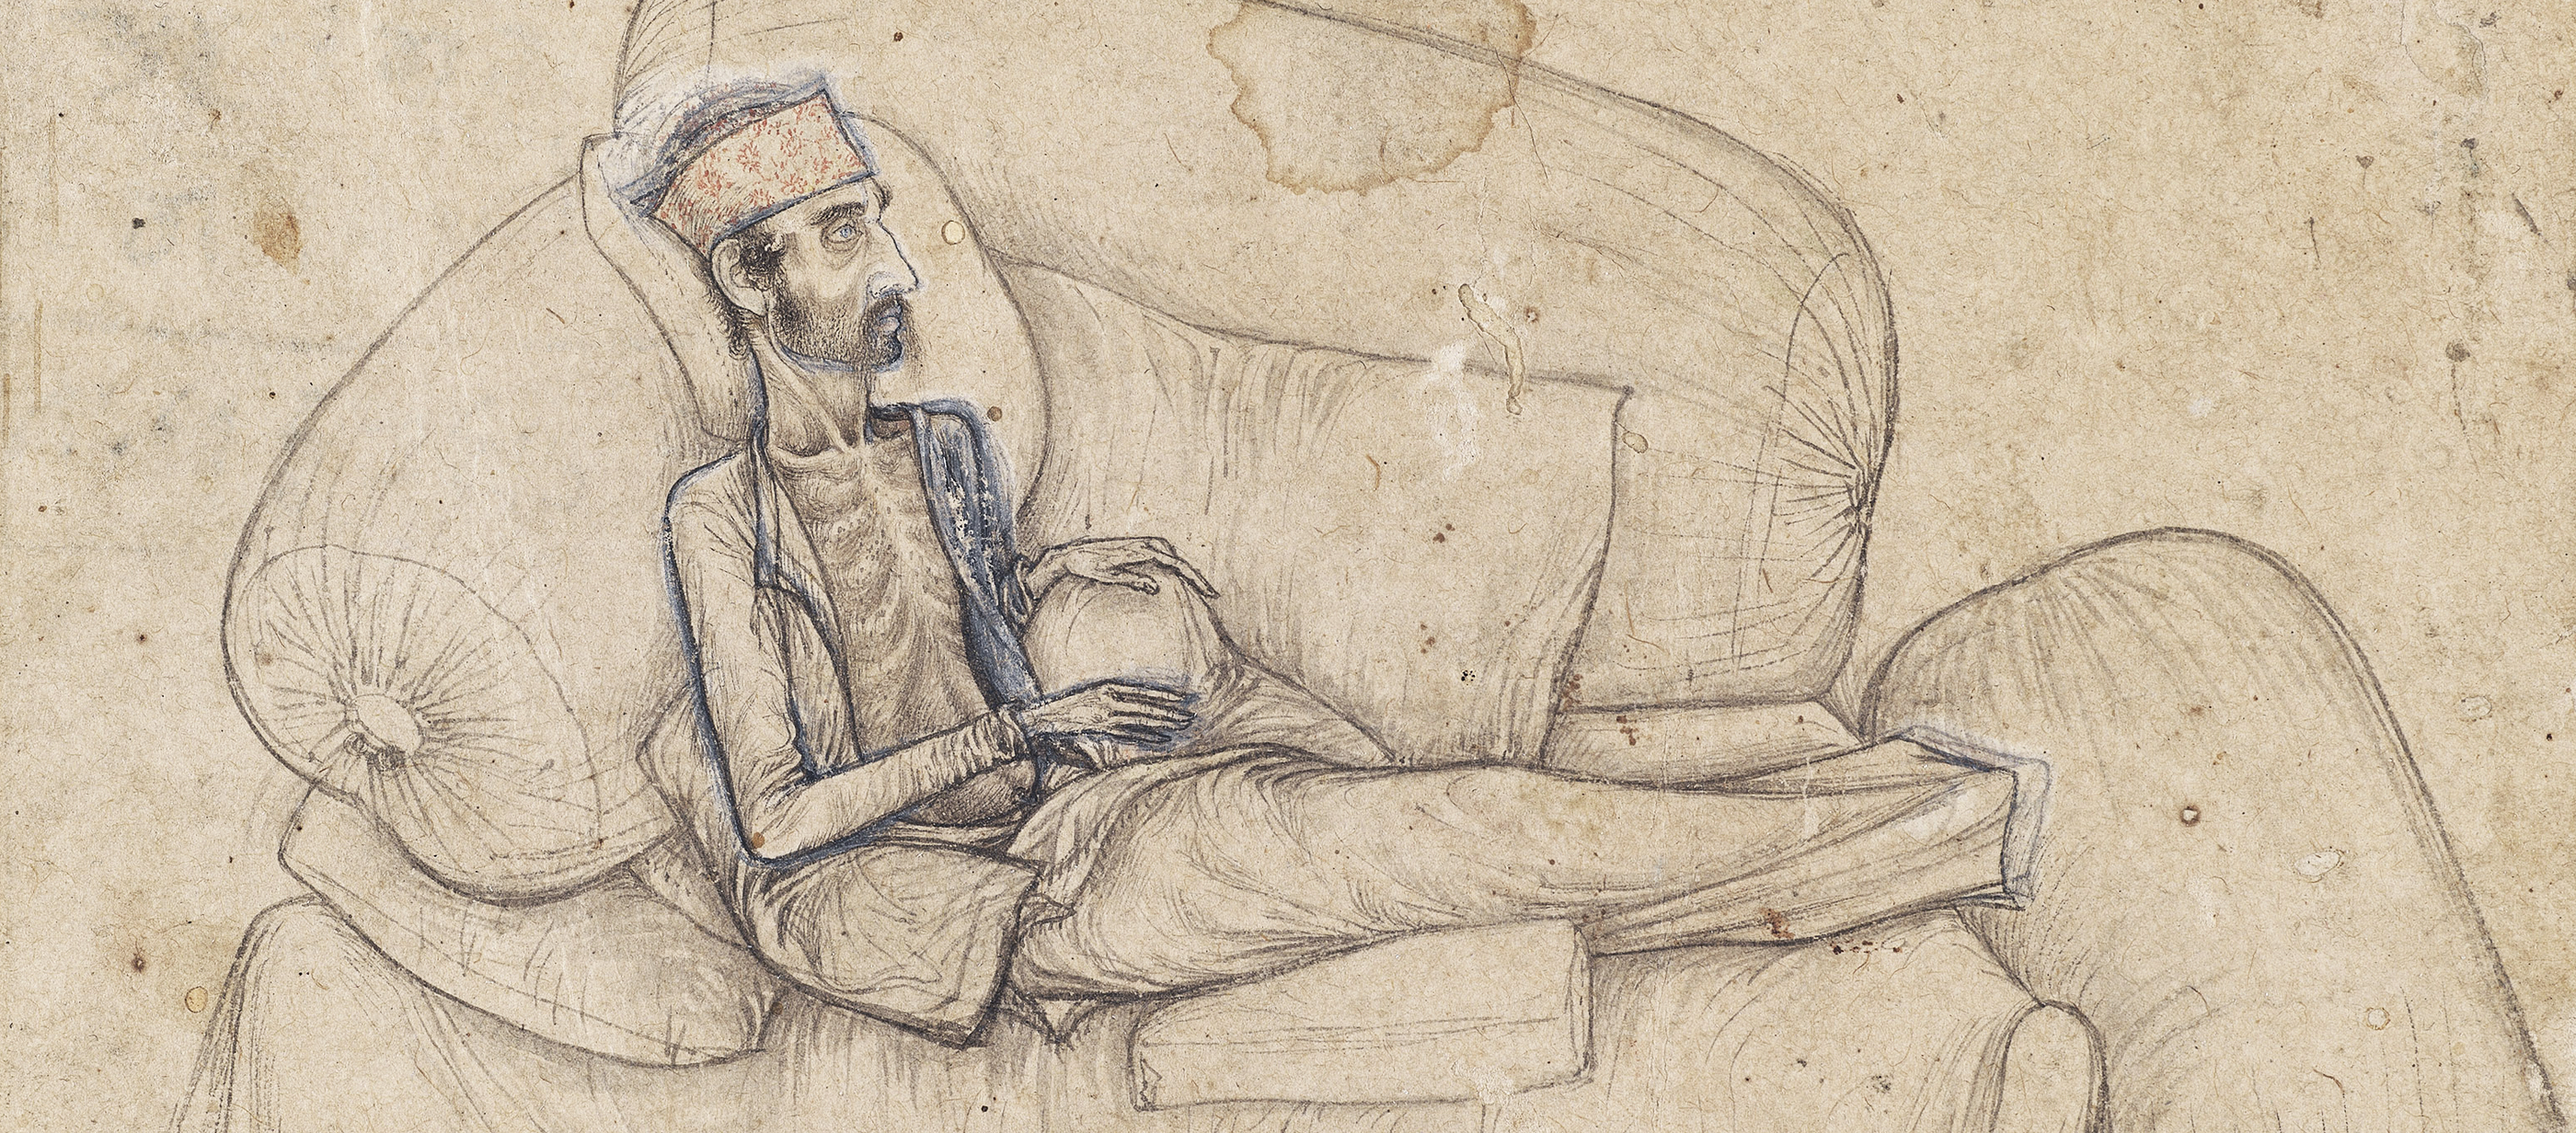 Dying Inayat Khan, attributed to Balchand, c. 1618